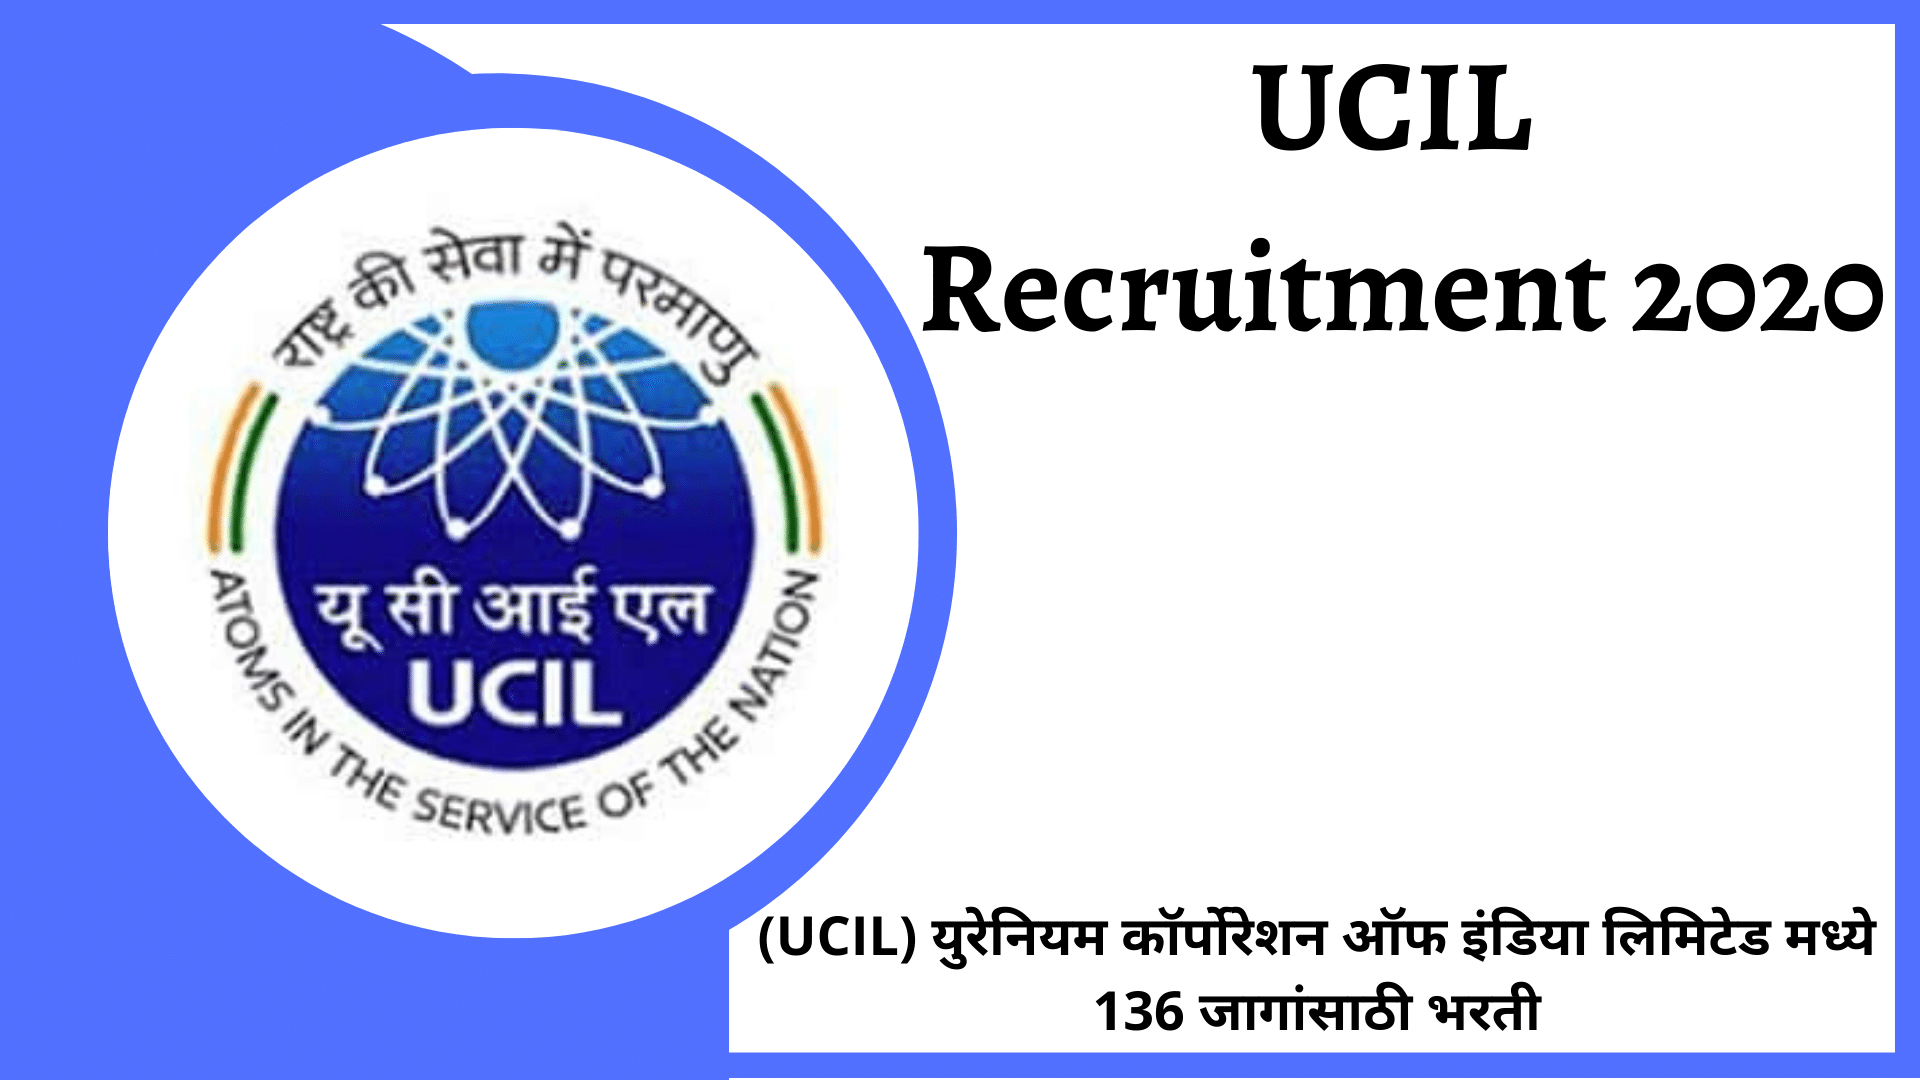 UCIL Recruitment 2020 | Uranium Corporation of India Limited Recruitment 2020 Apply online @cdn.digialm.com